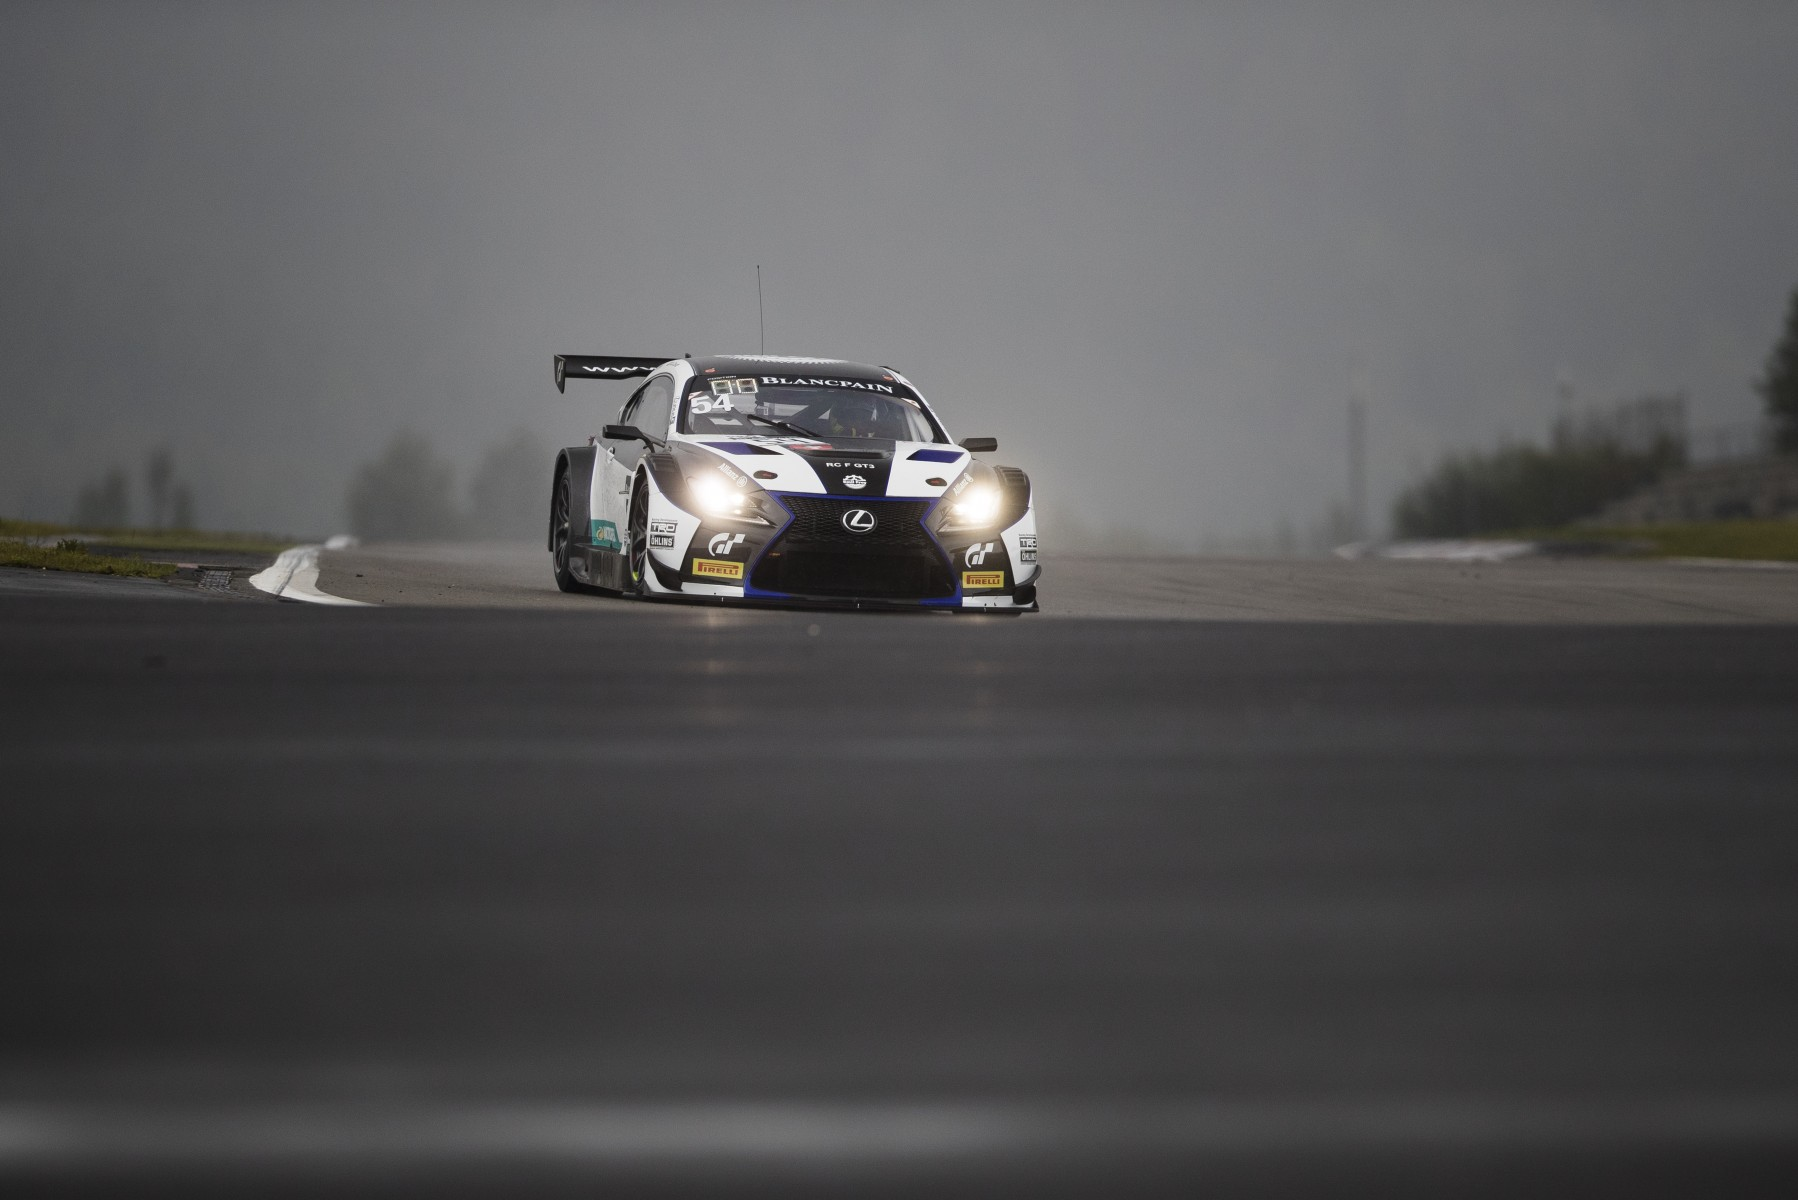 Emil Frey Lexus Team, the private race team from Switzerland is launching at full speed into the 2018 season